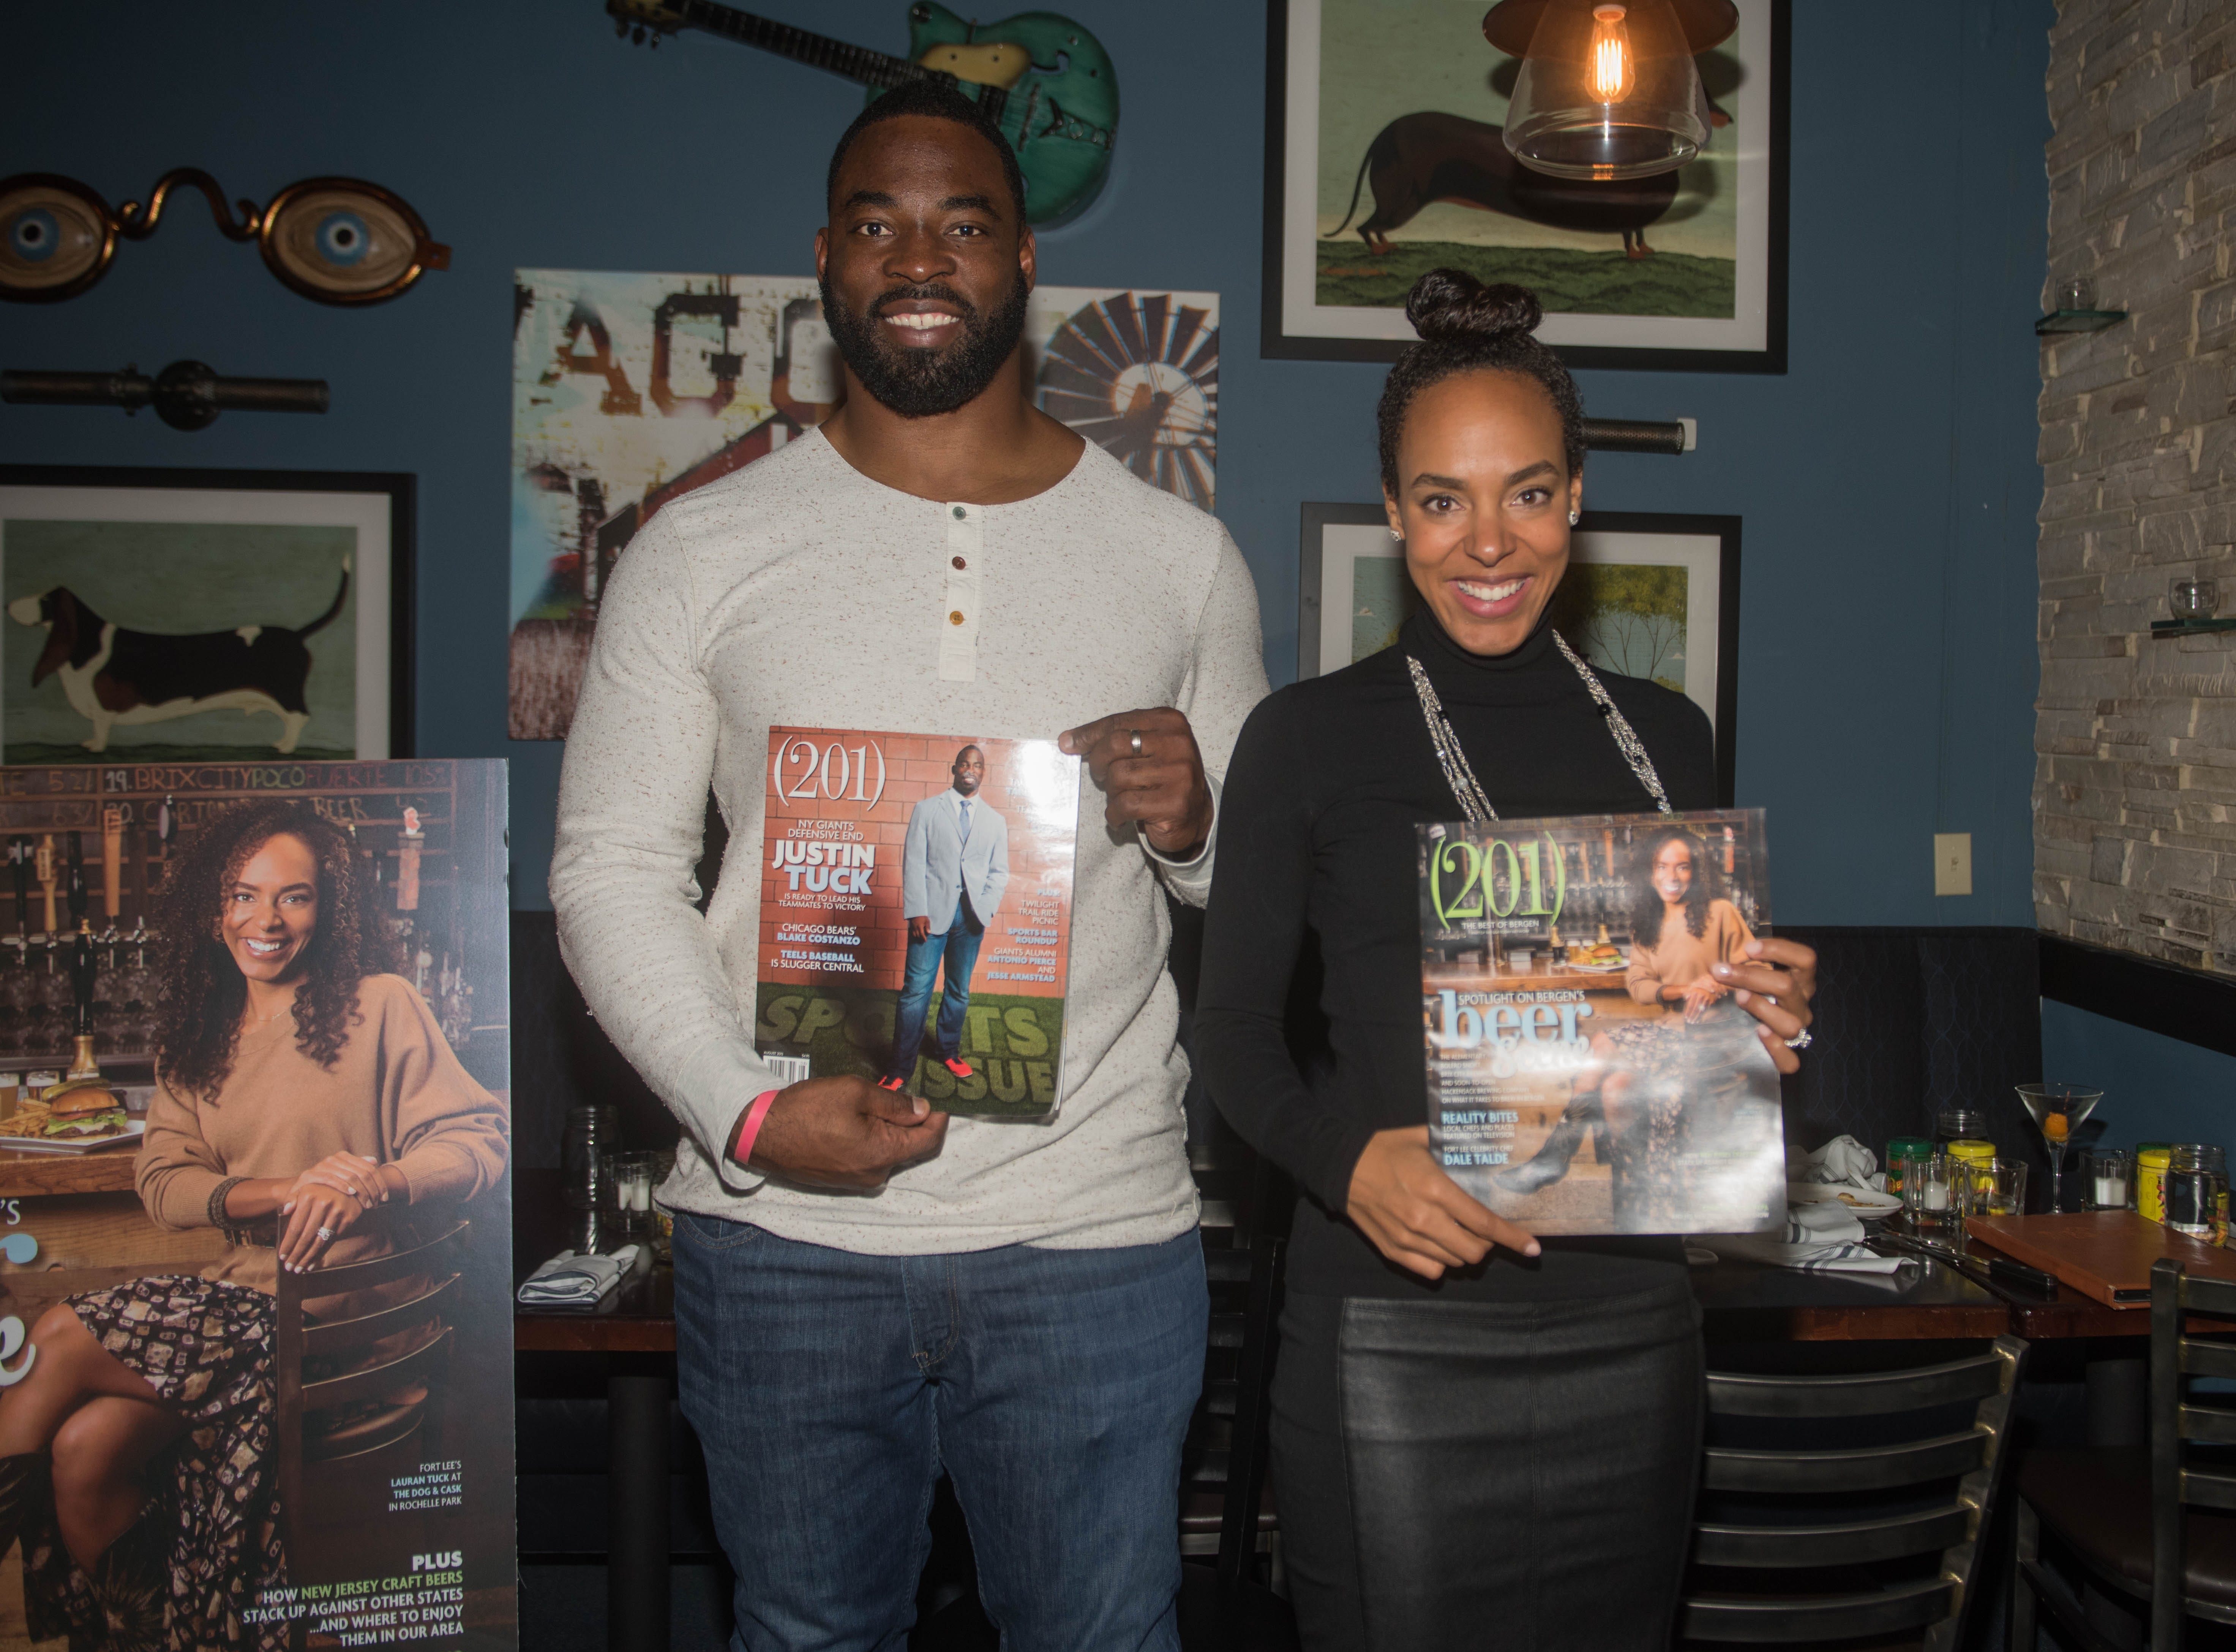 Justin Tuck and Lauran Tuck. (201) Magazine and NorthJersey.com held Taste Test Tuesday at he Dog and Cask in Rochelle Park with this month's cover model, Lauran Tuck and former cover model and former NY Giant Justin Tuck. 11/13/2018